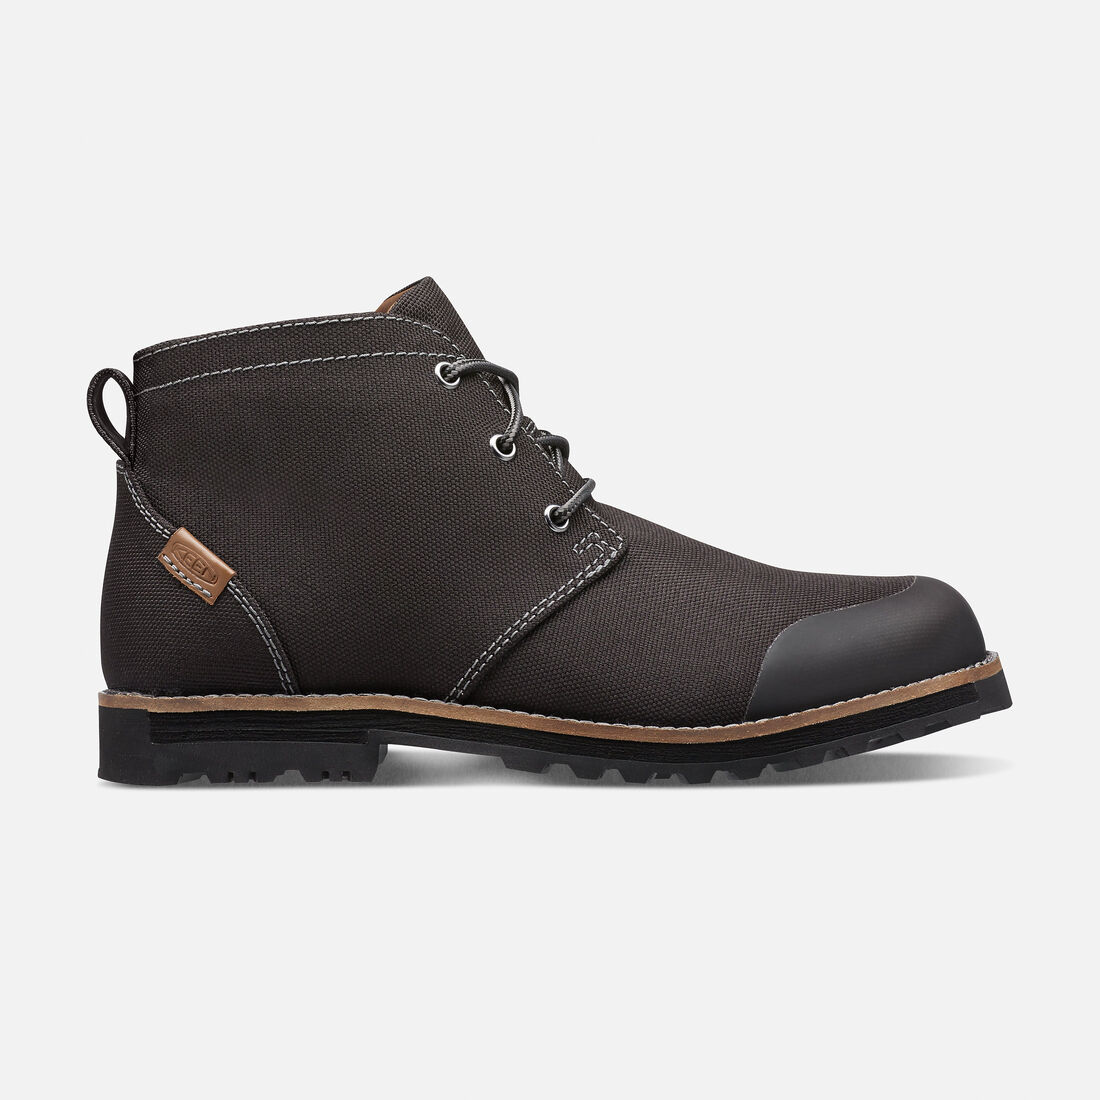 Men's THE 59 CHUKKA in Black - large view.